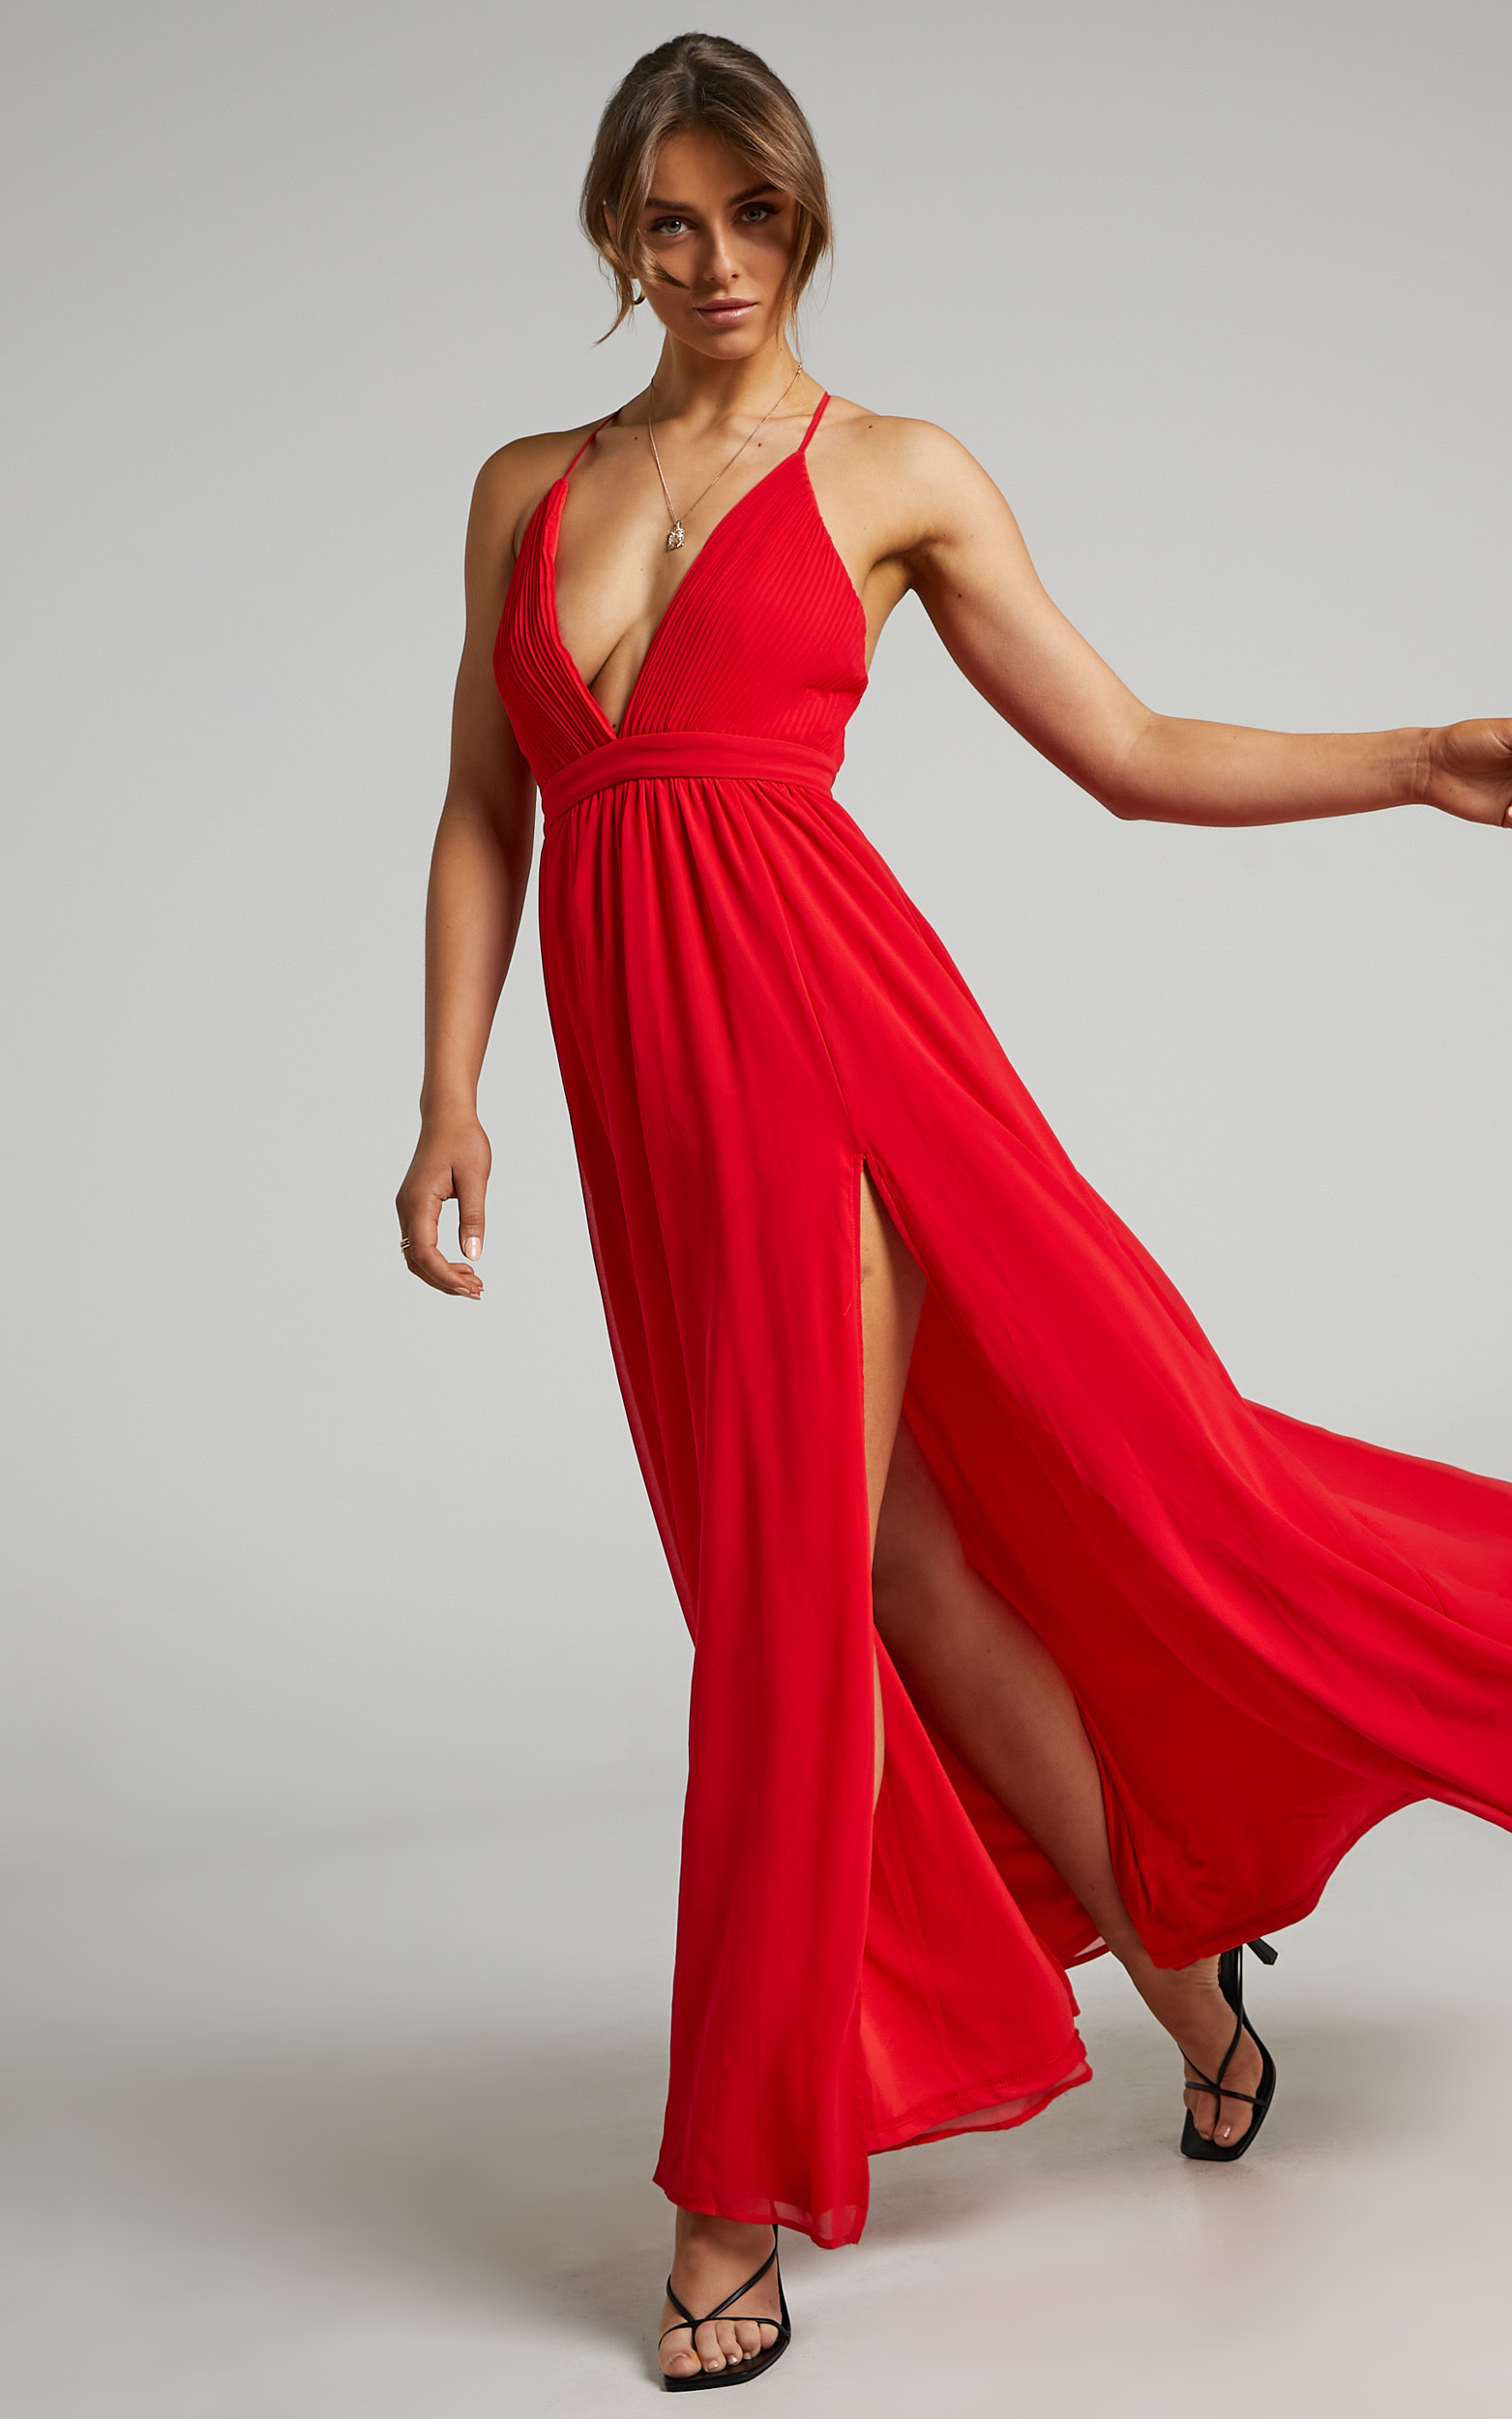 Shes A Delight Maxi Dress in Red - 04, RED4, hi-res image number null